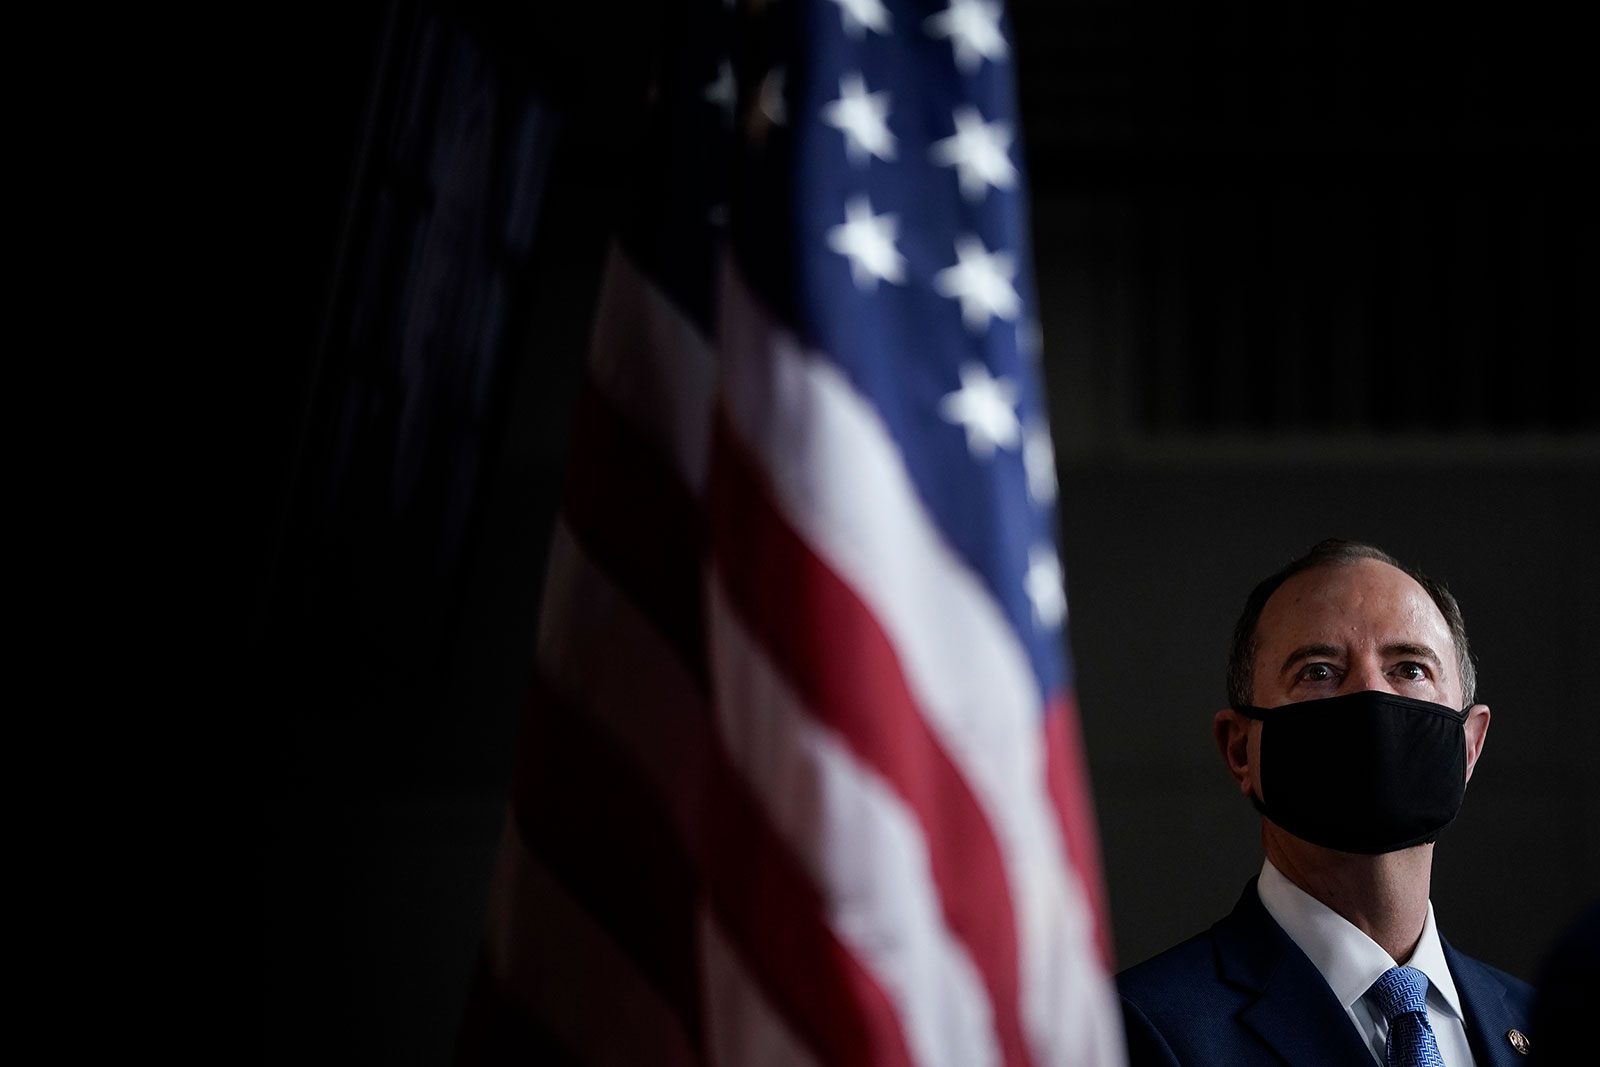 Rep. Adam Schiff attends a news conference in Washington, DC, on September 23.